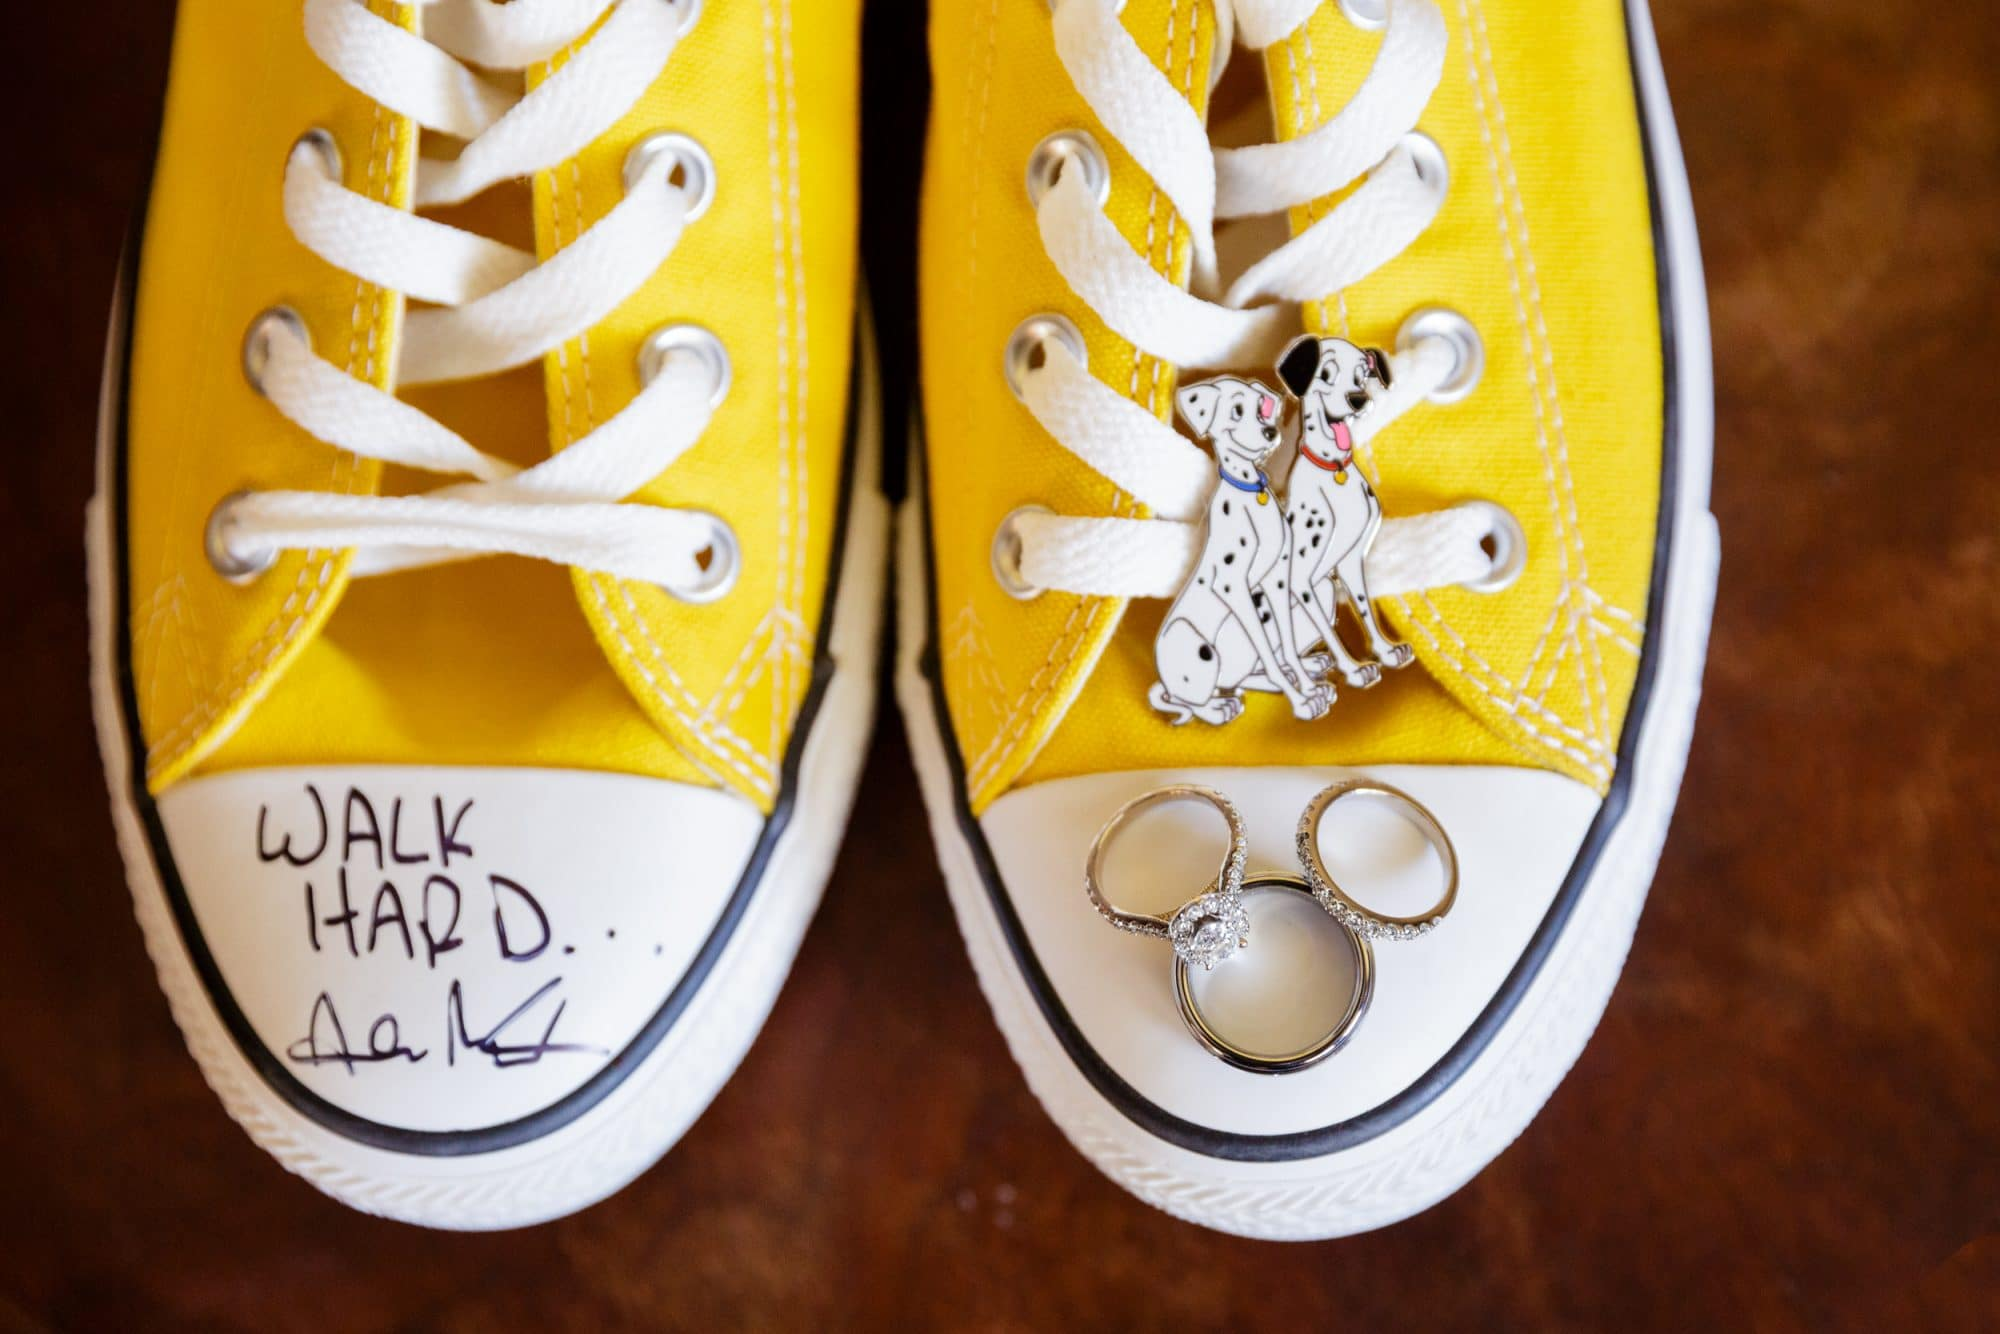 Steven Miller Photography- yellow sneakers with dalmation pin and rings arranged in Mickey Mouse shape